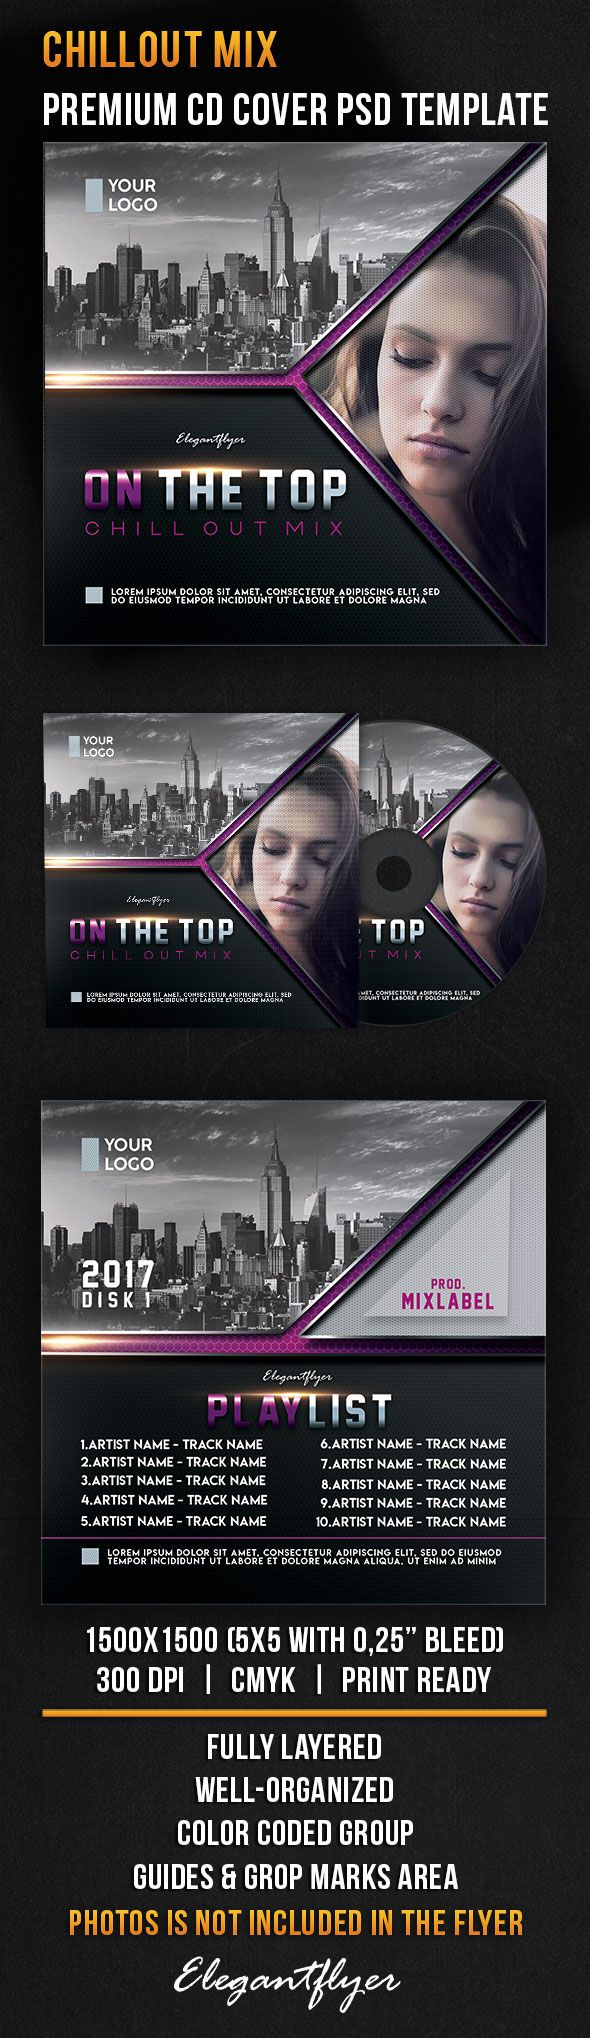 Chillout Mix – Premium CD Cover PSD Template